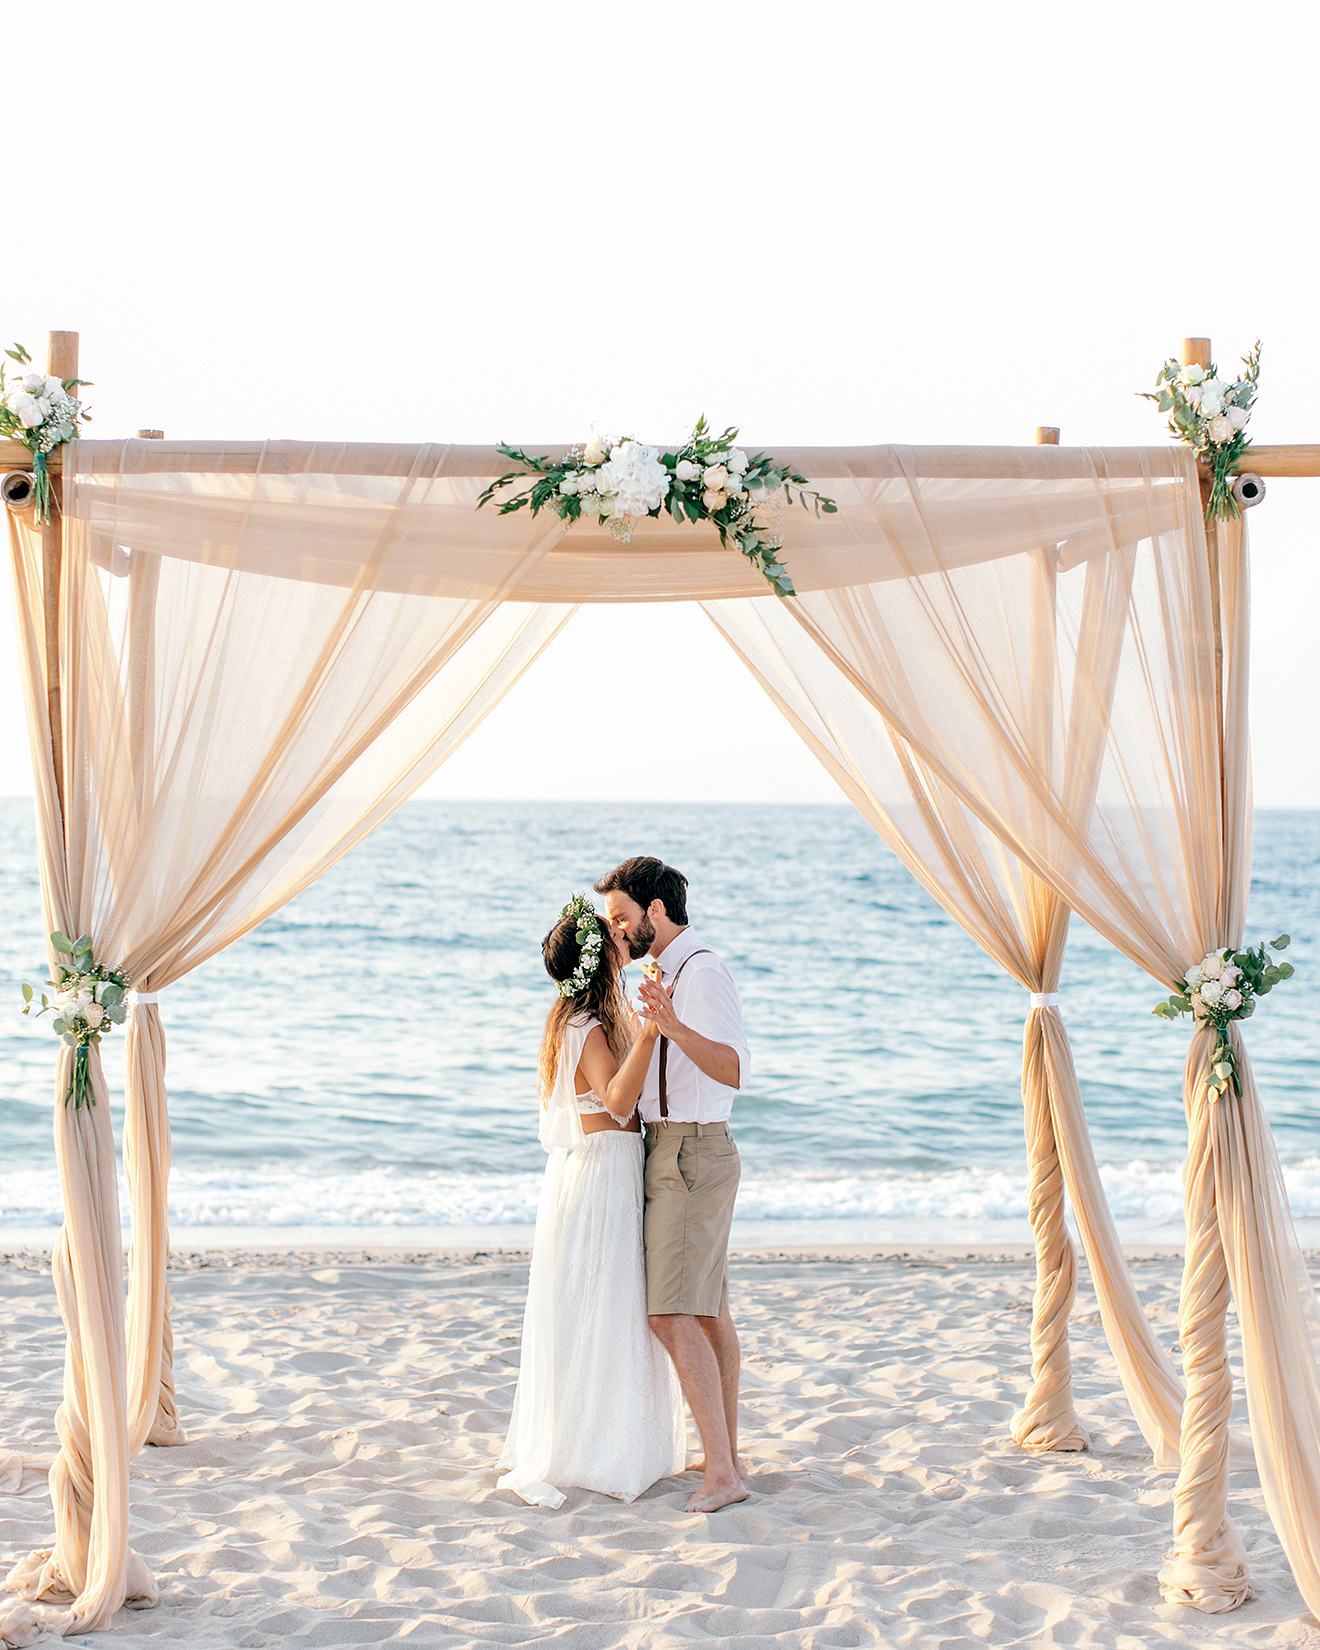 newlyweds kissing under tulle-wrapped structure